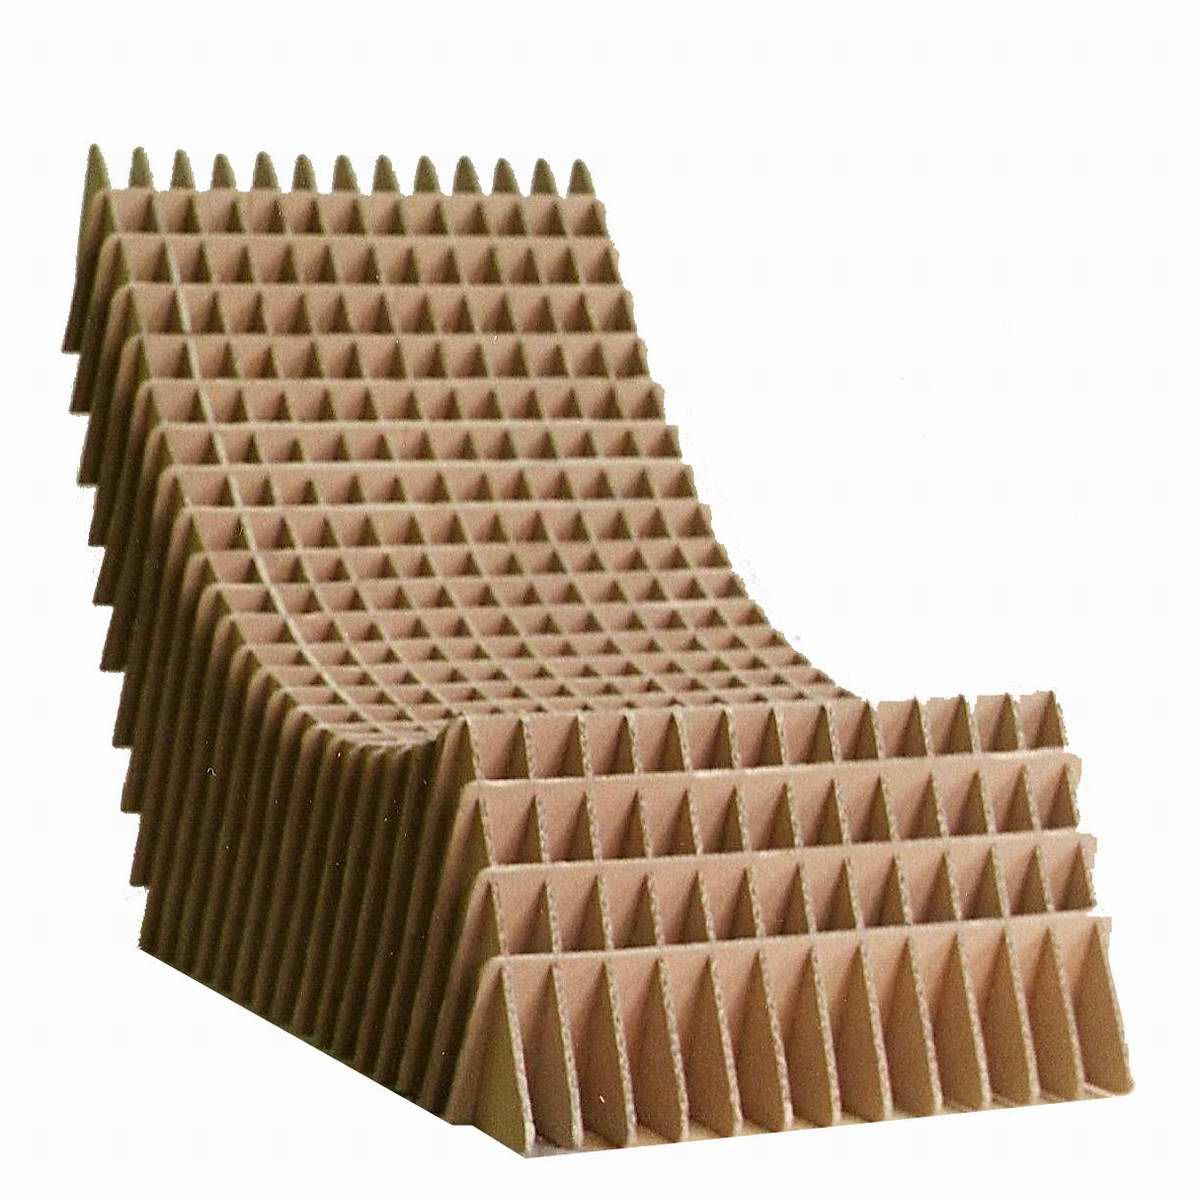 Comfortable cardboard chair designs - 7 Wacky Pieces Of Cardboard Furniture You Ll Have To See To Believe